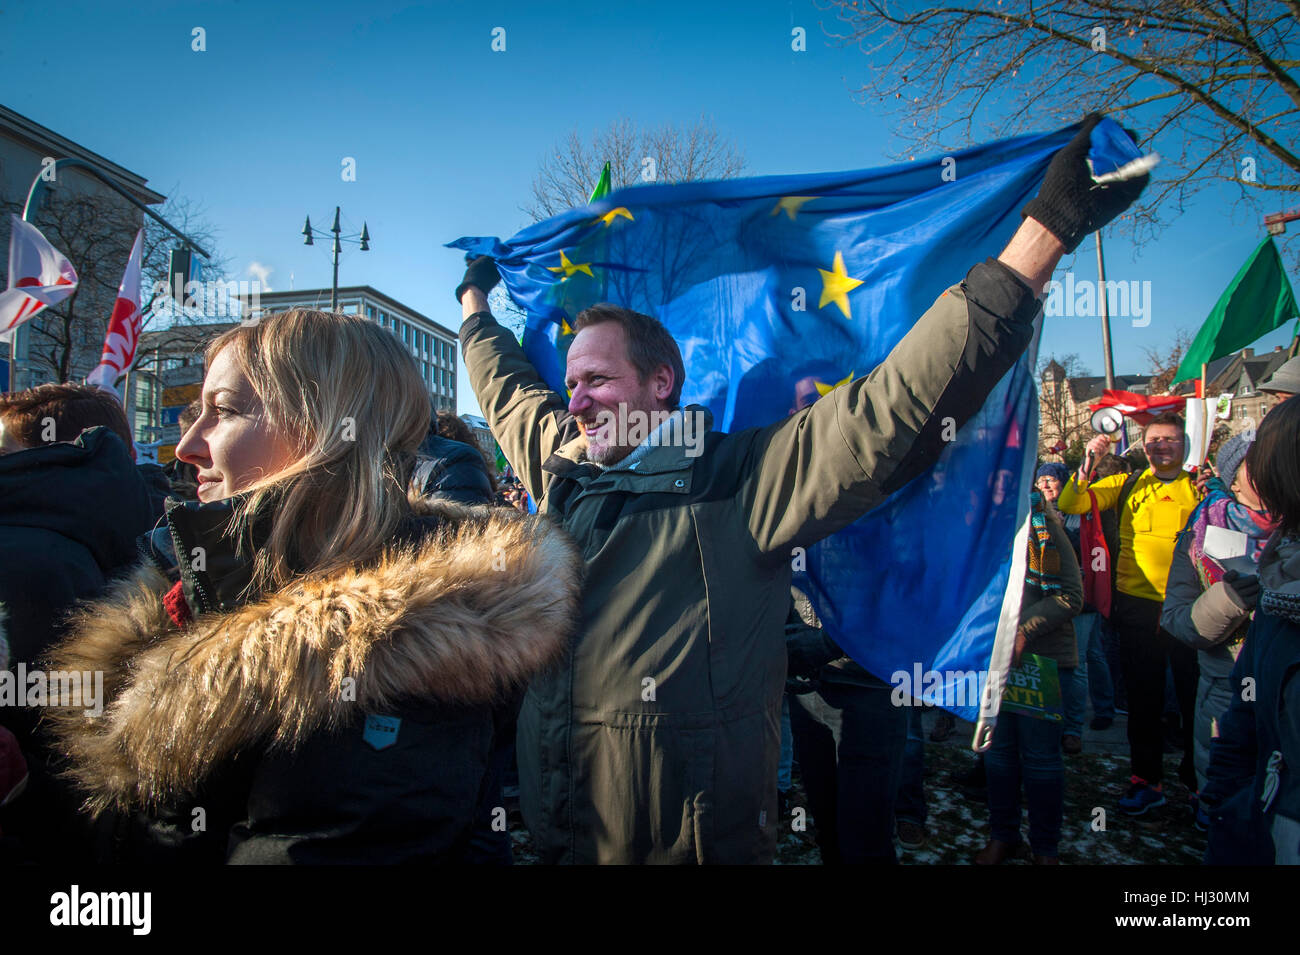 Some 3 thousand demonstrators gathered in Koblenz, Germany to protest against the gathering of Europe's far - Stock Image